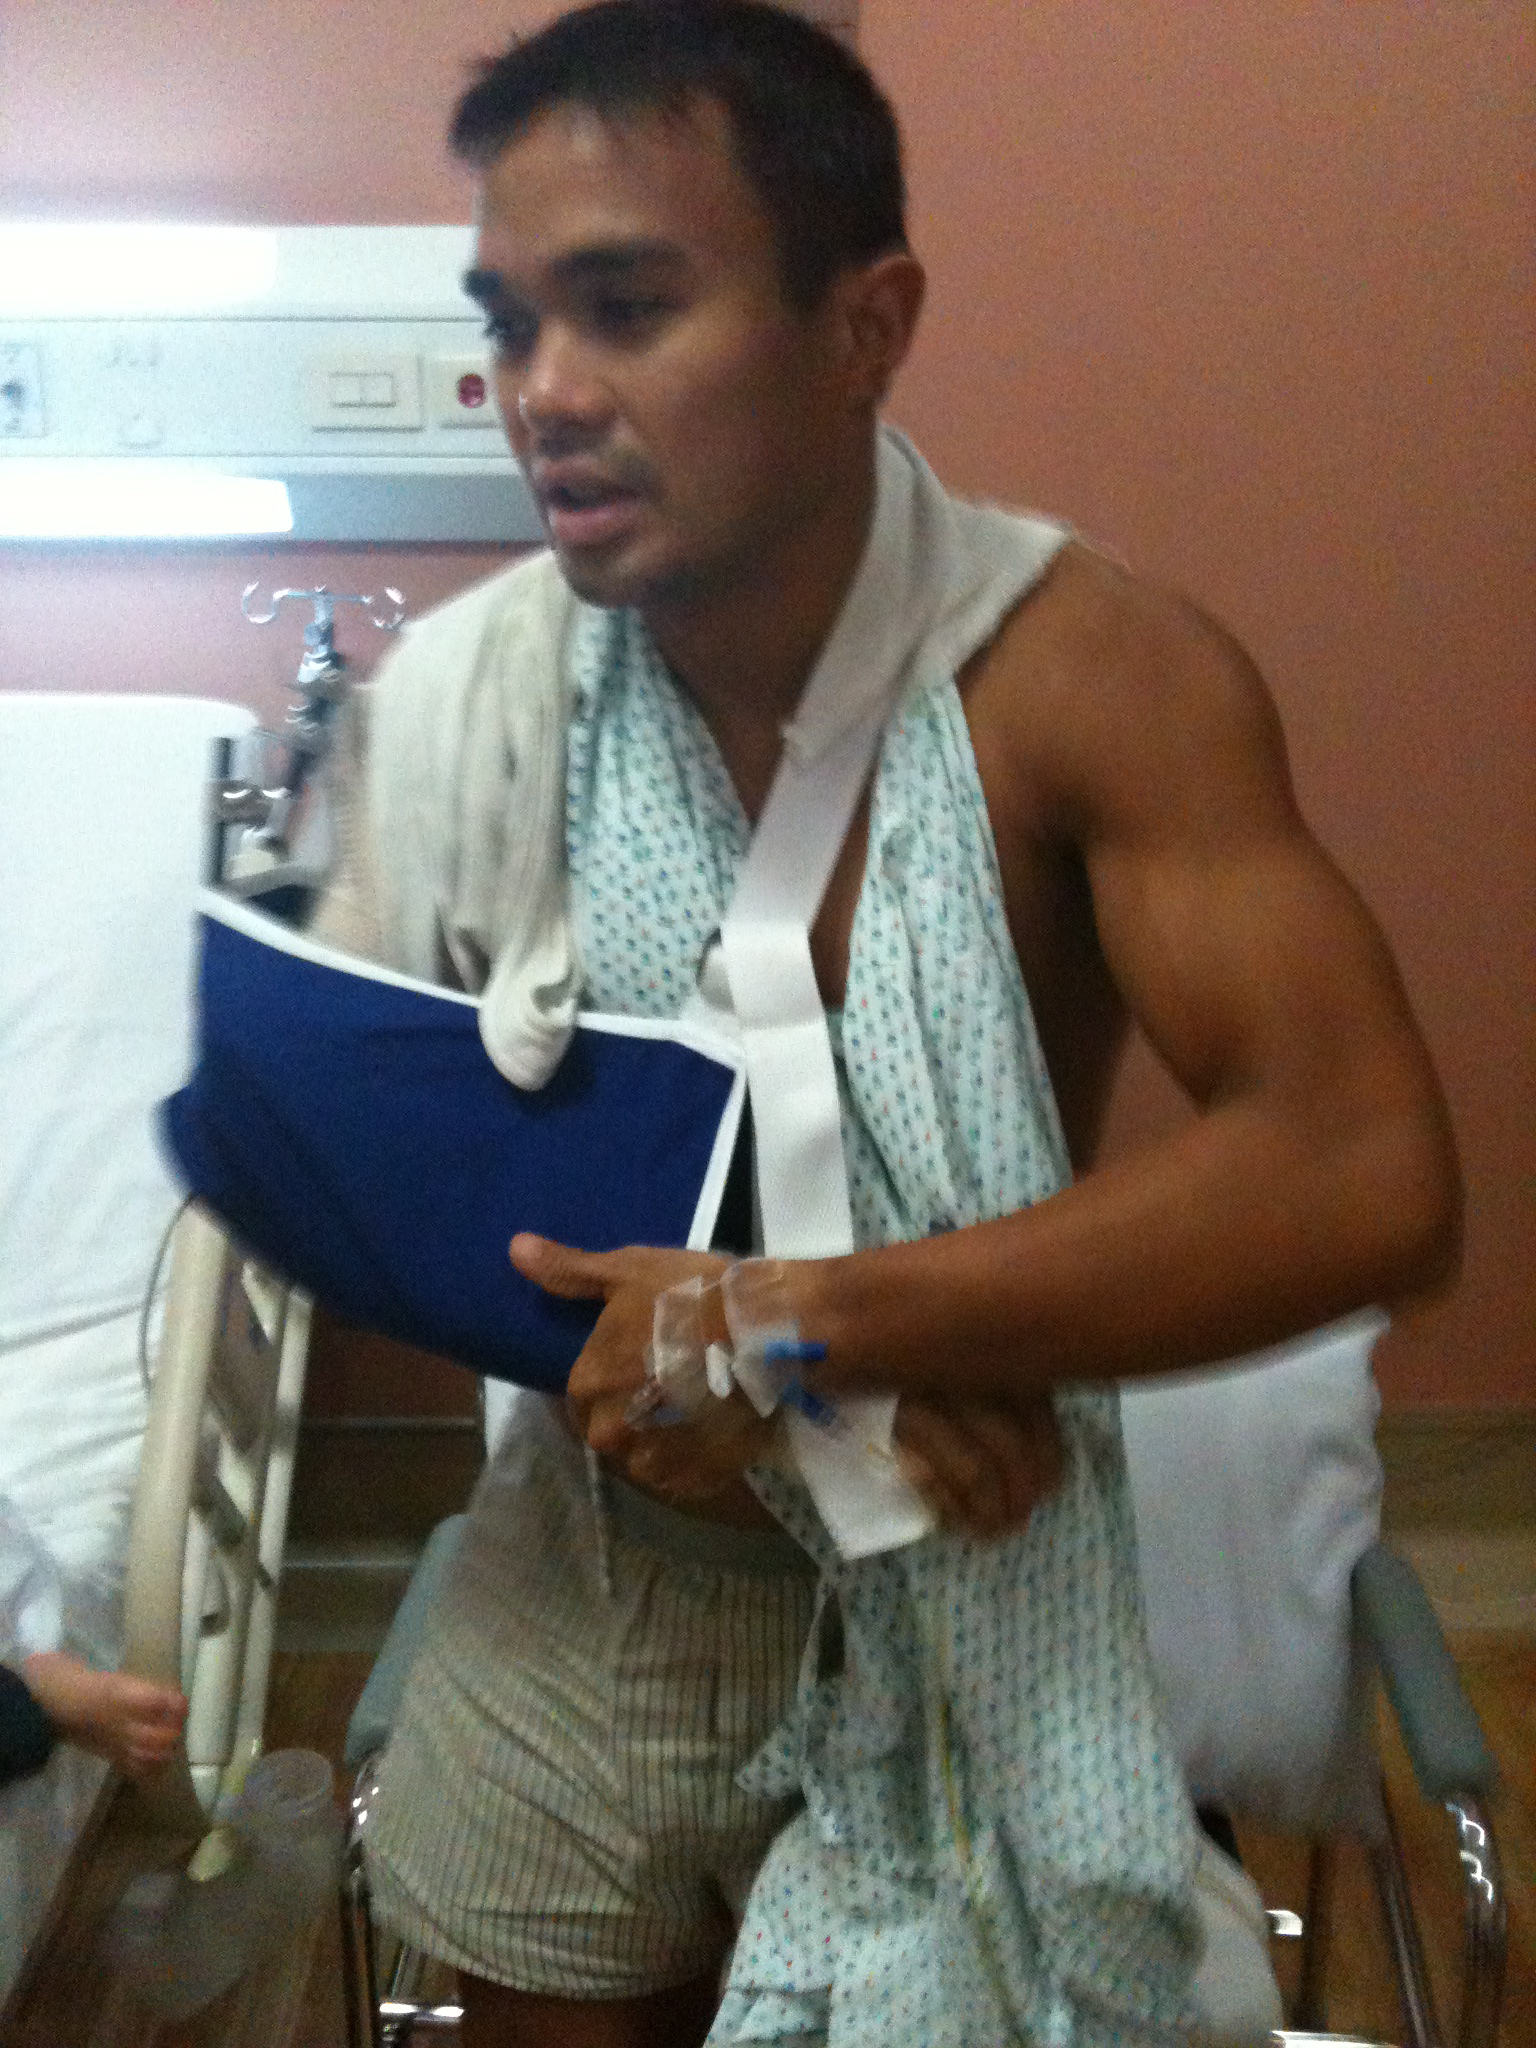 NO EXCUSES. Martin Lorenzo started doing exercises from his hospital bed on the road to recovery. Photo from Martin Lorenzo.